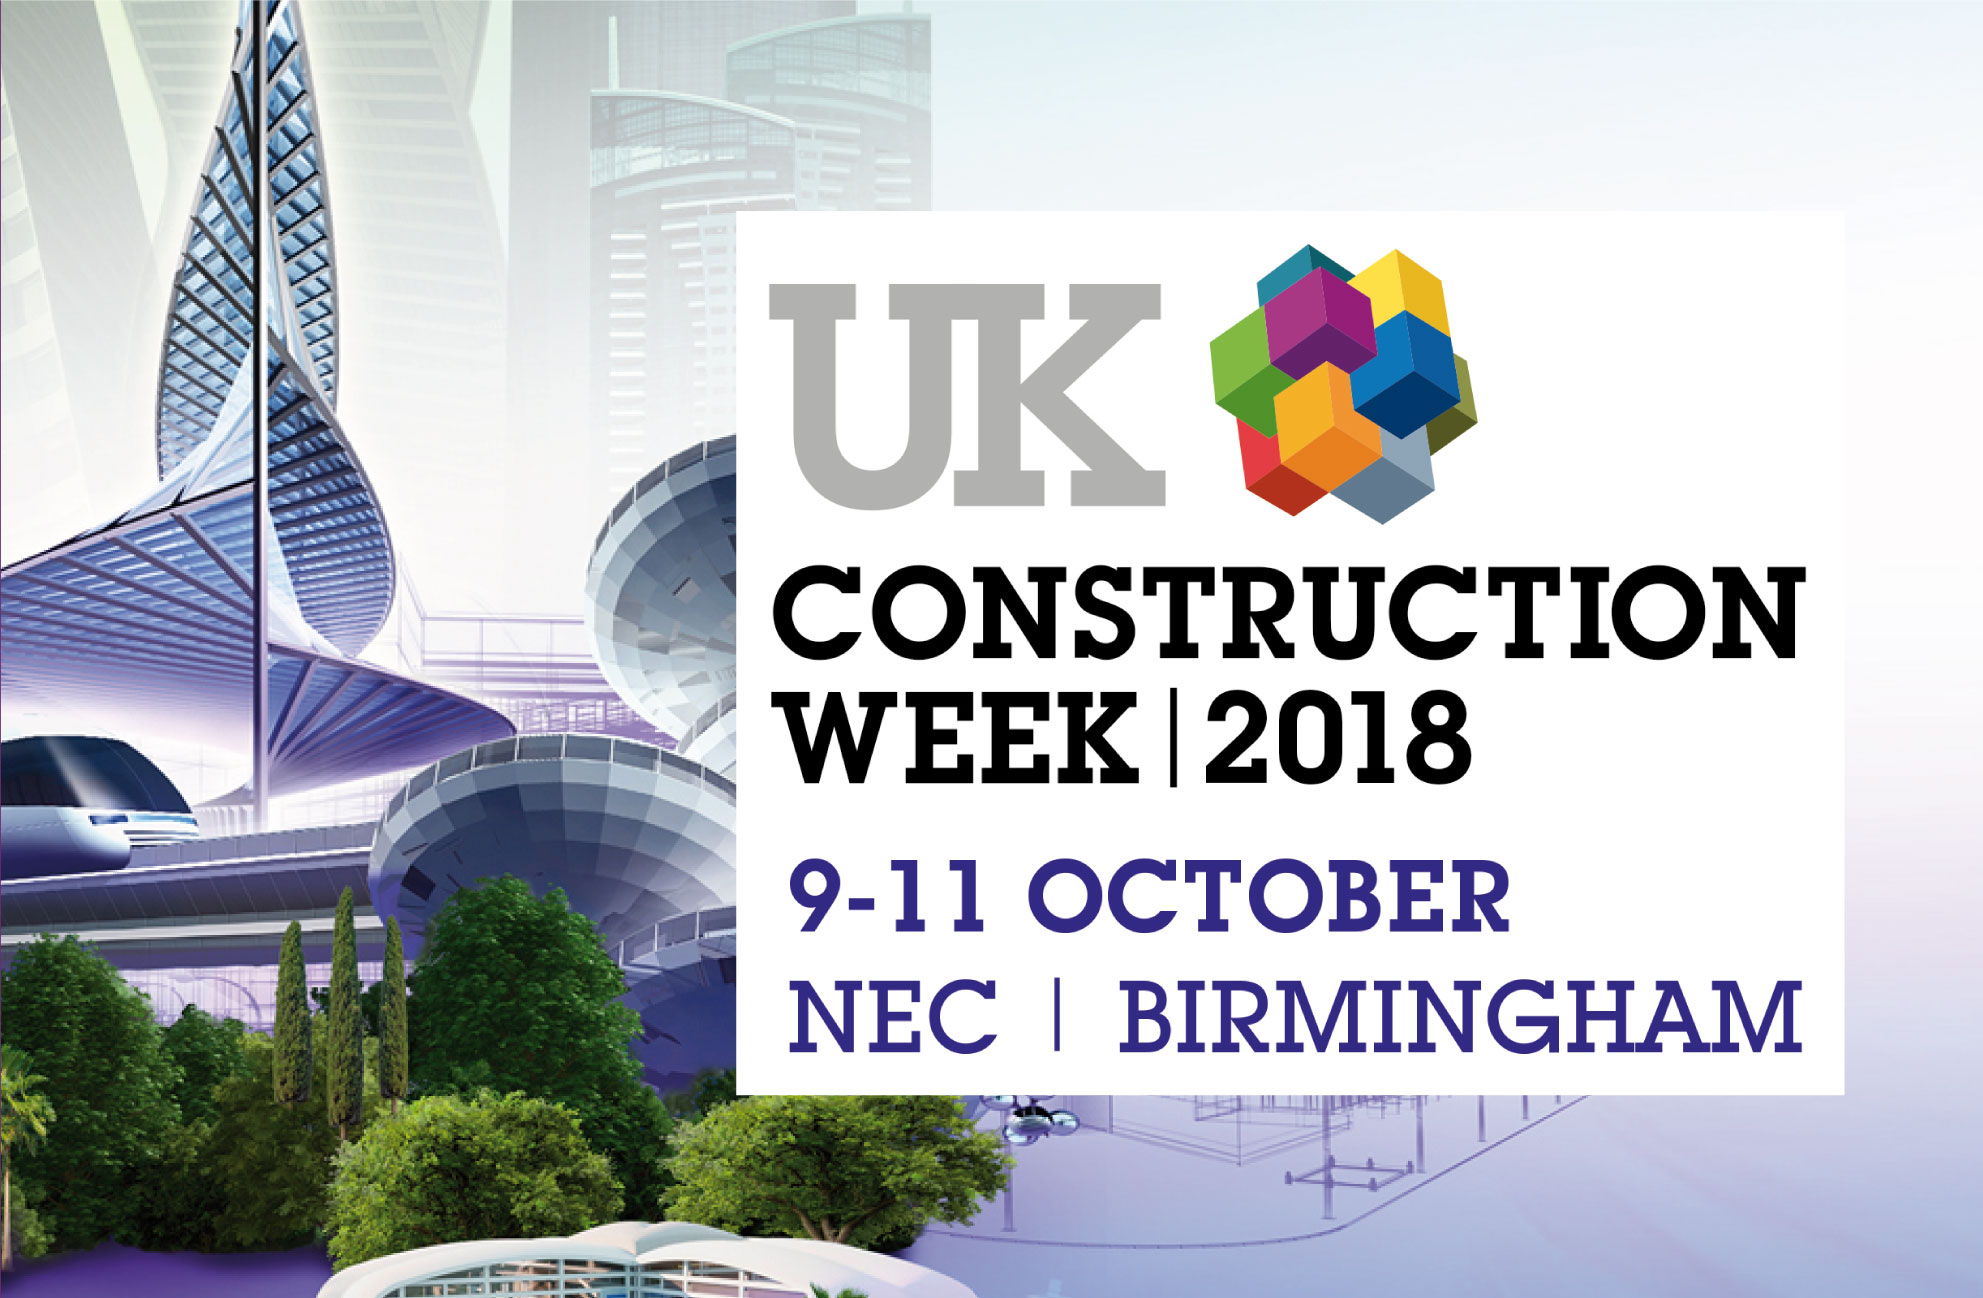 UK Construction Week 2018 logo